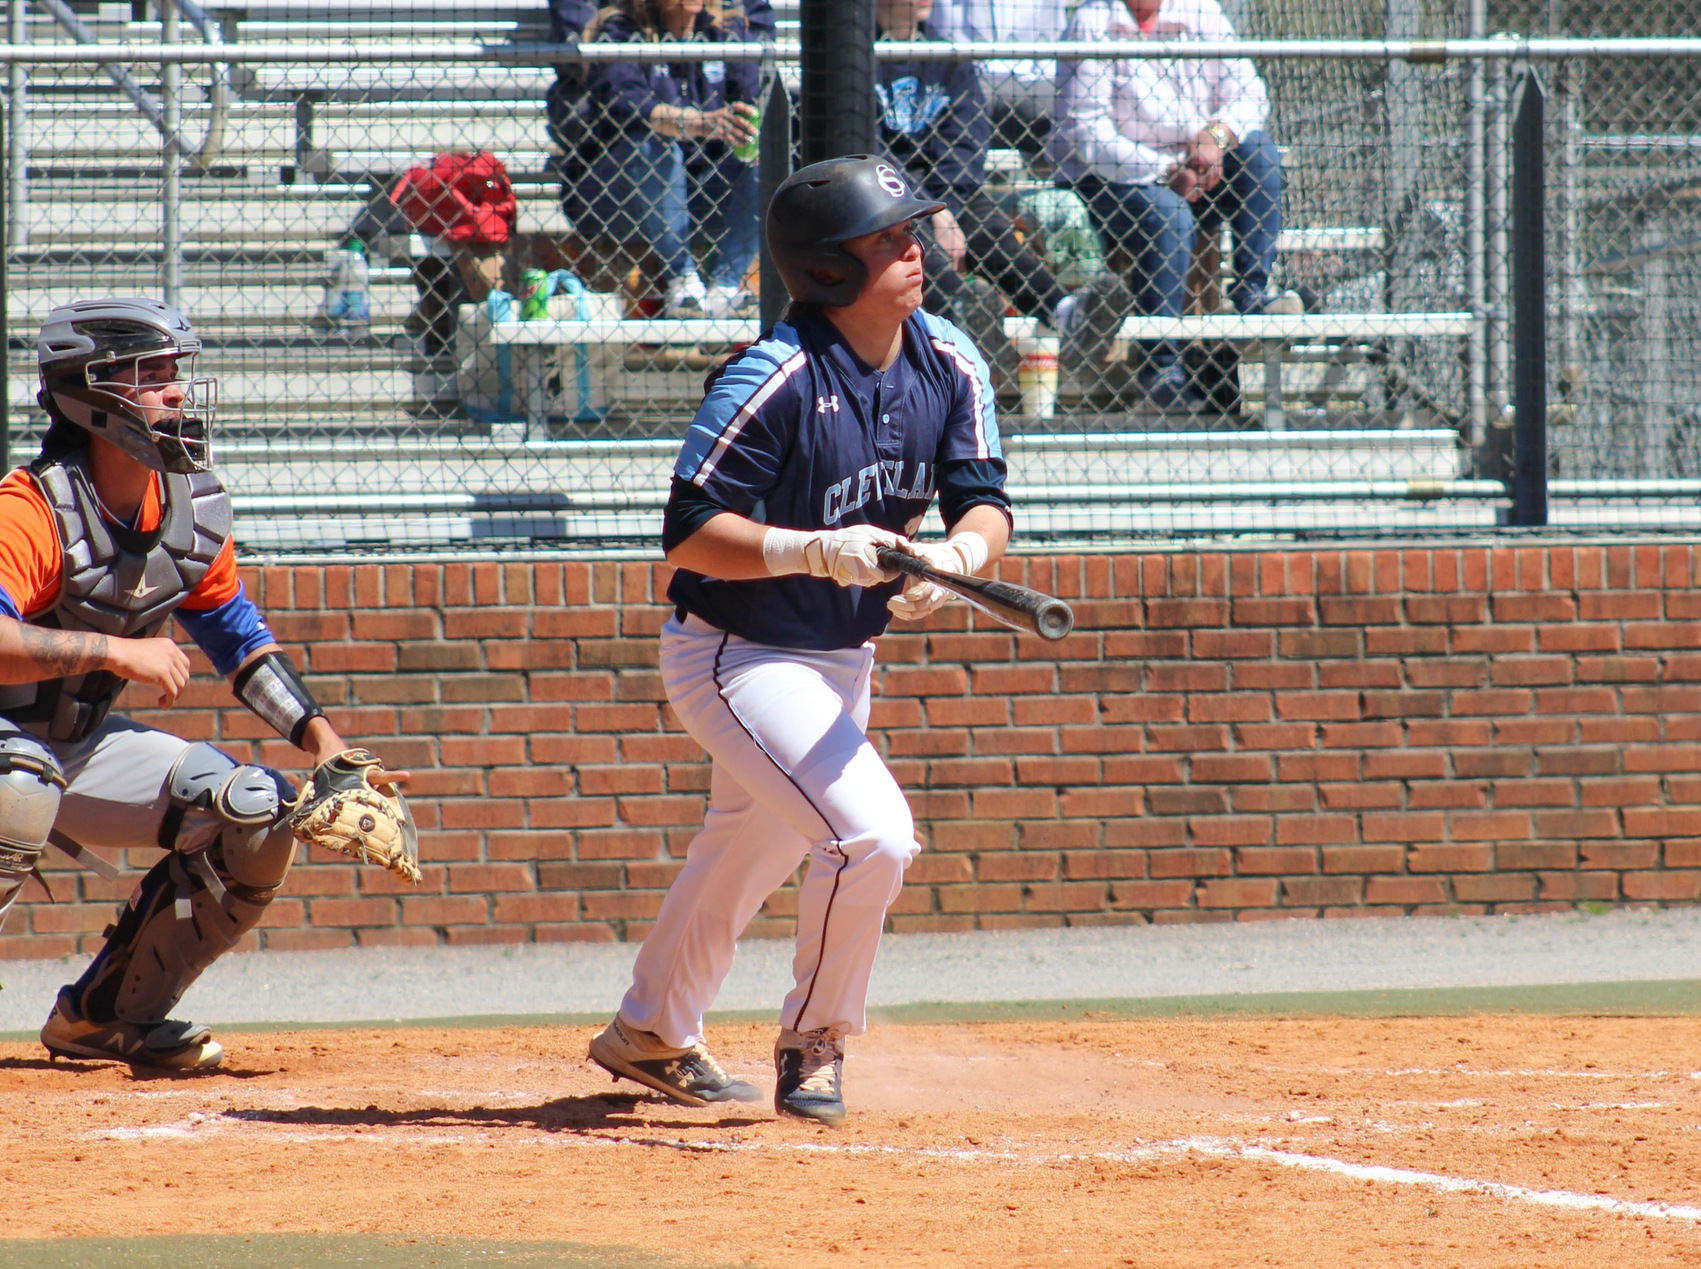 Cougars Walk Off, Win Series vs. Chattanooga State